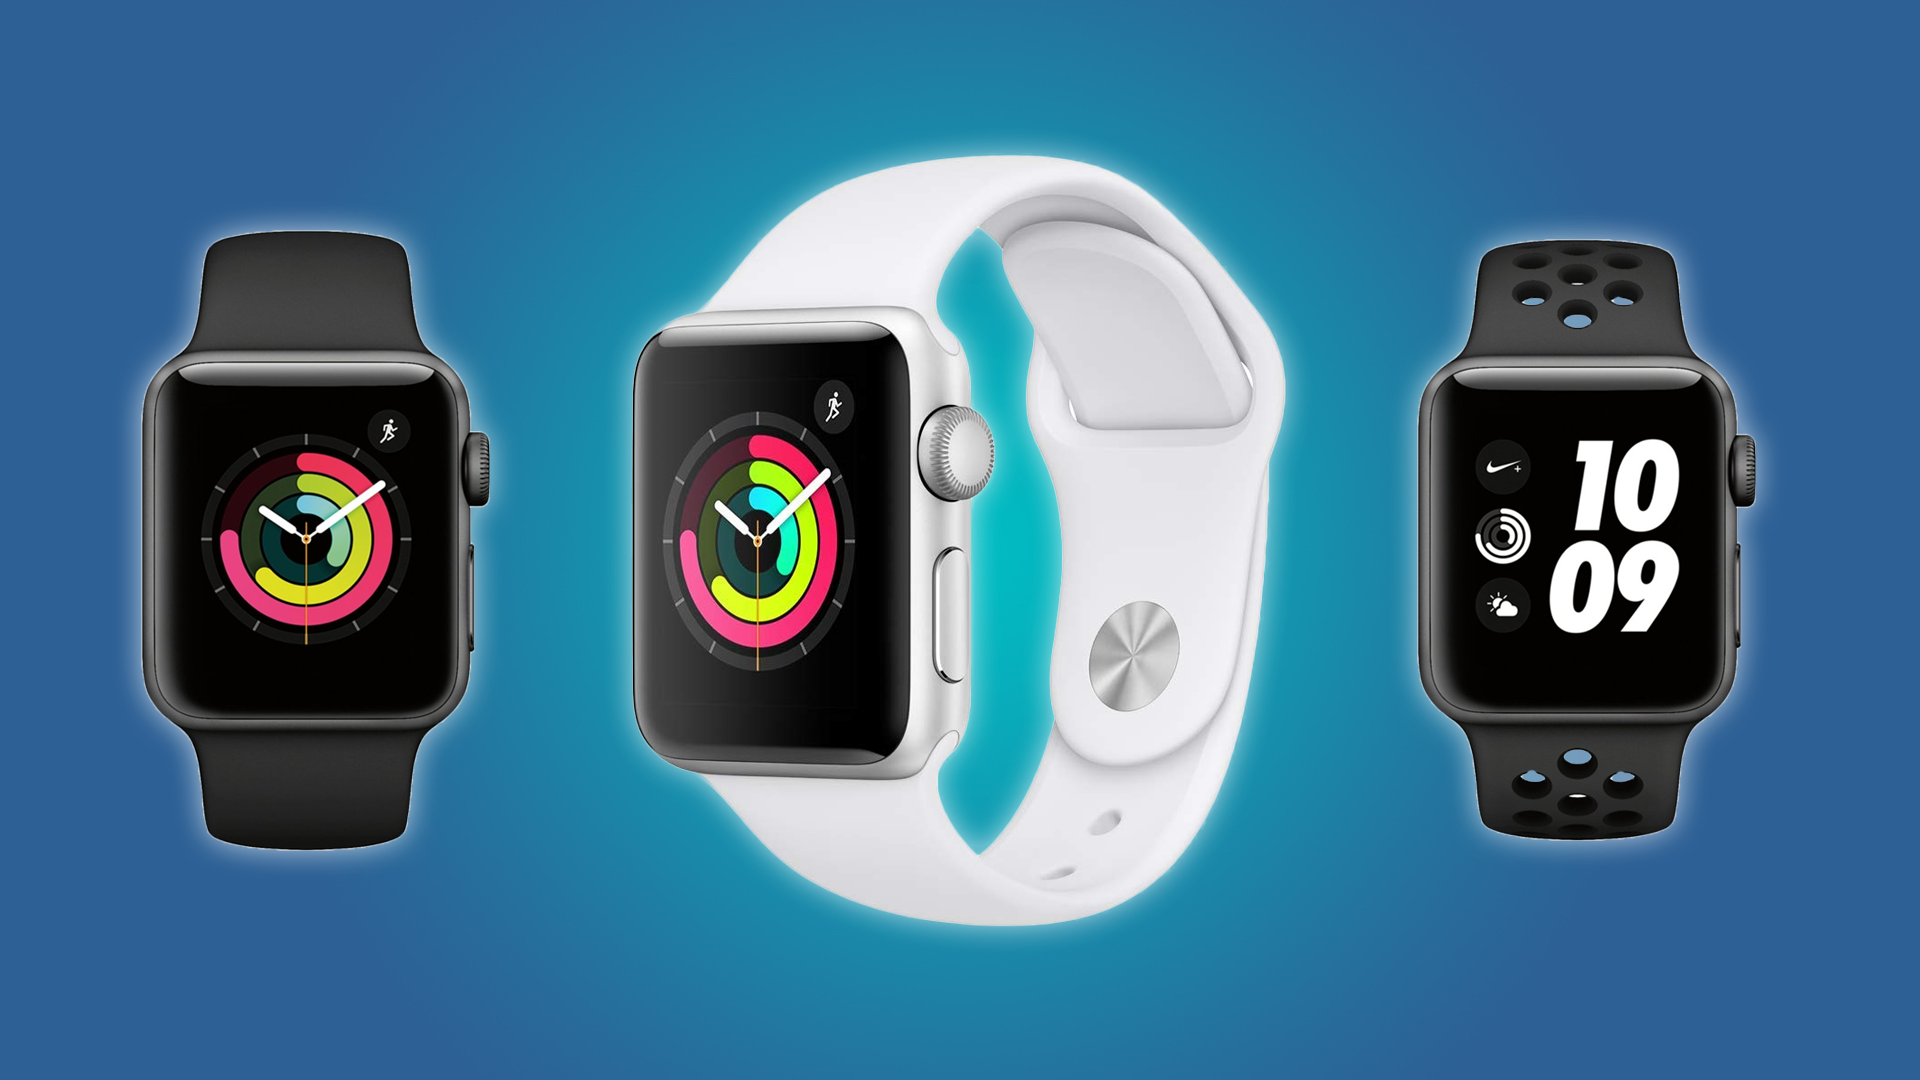 The Apple Watch Series 3 in black, white, and Nike black